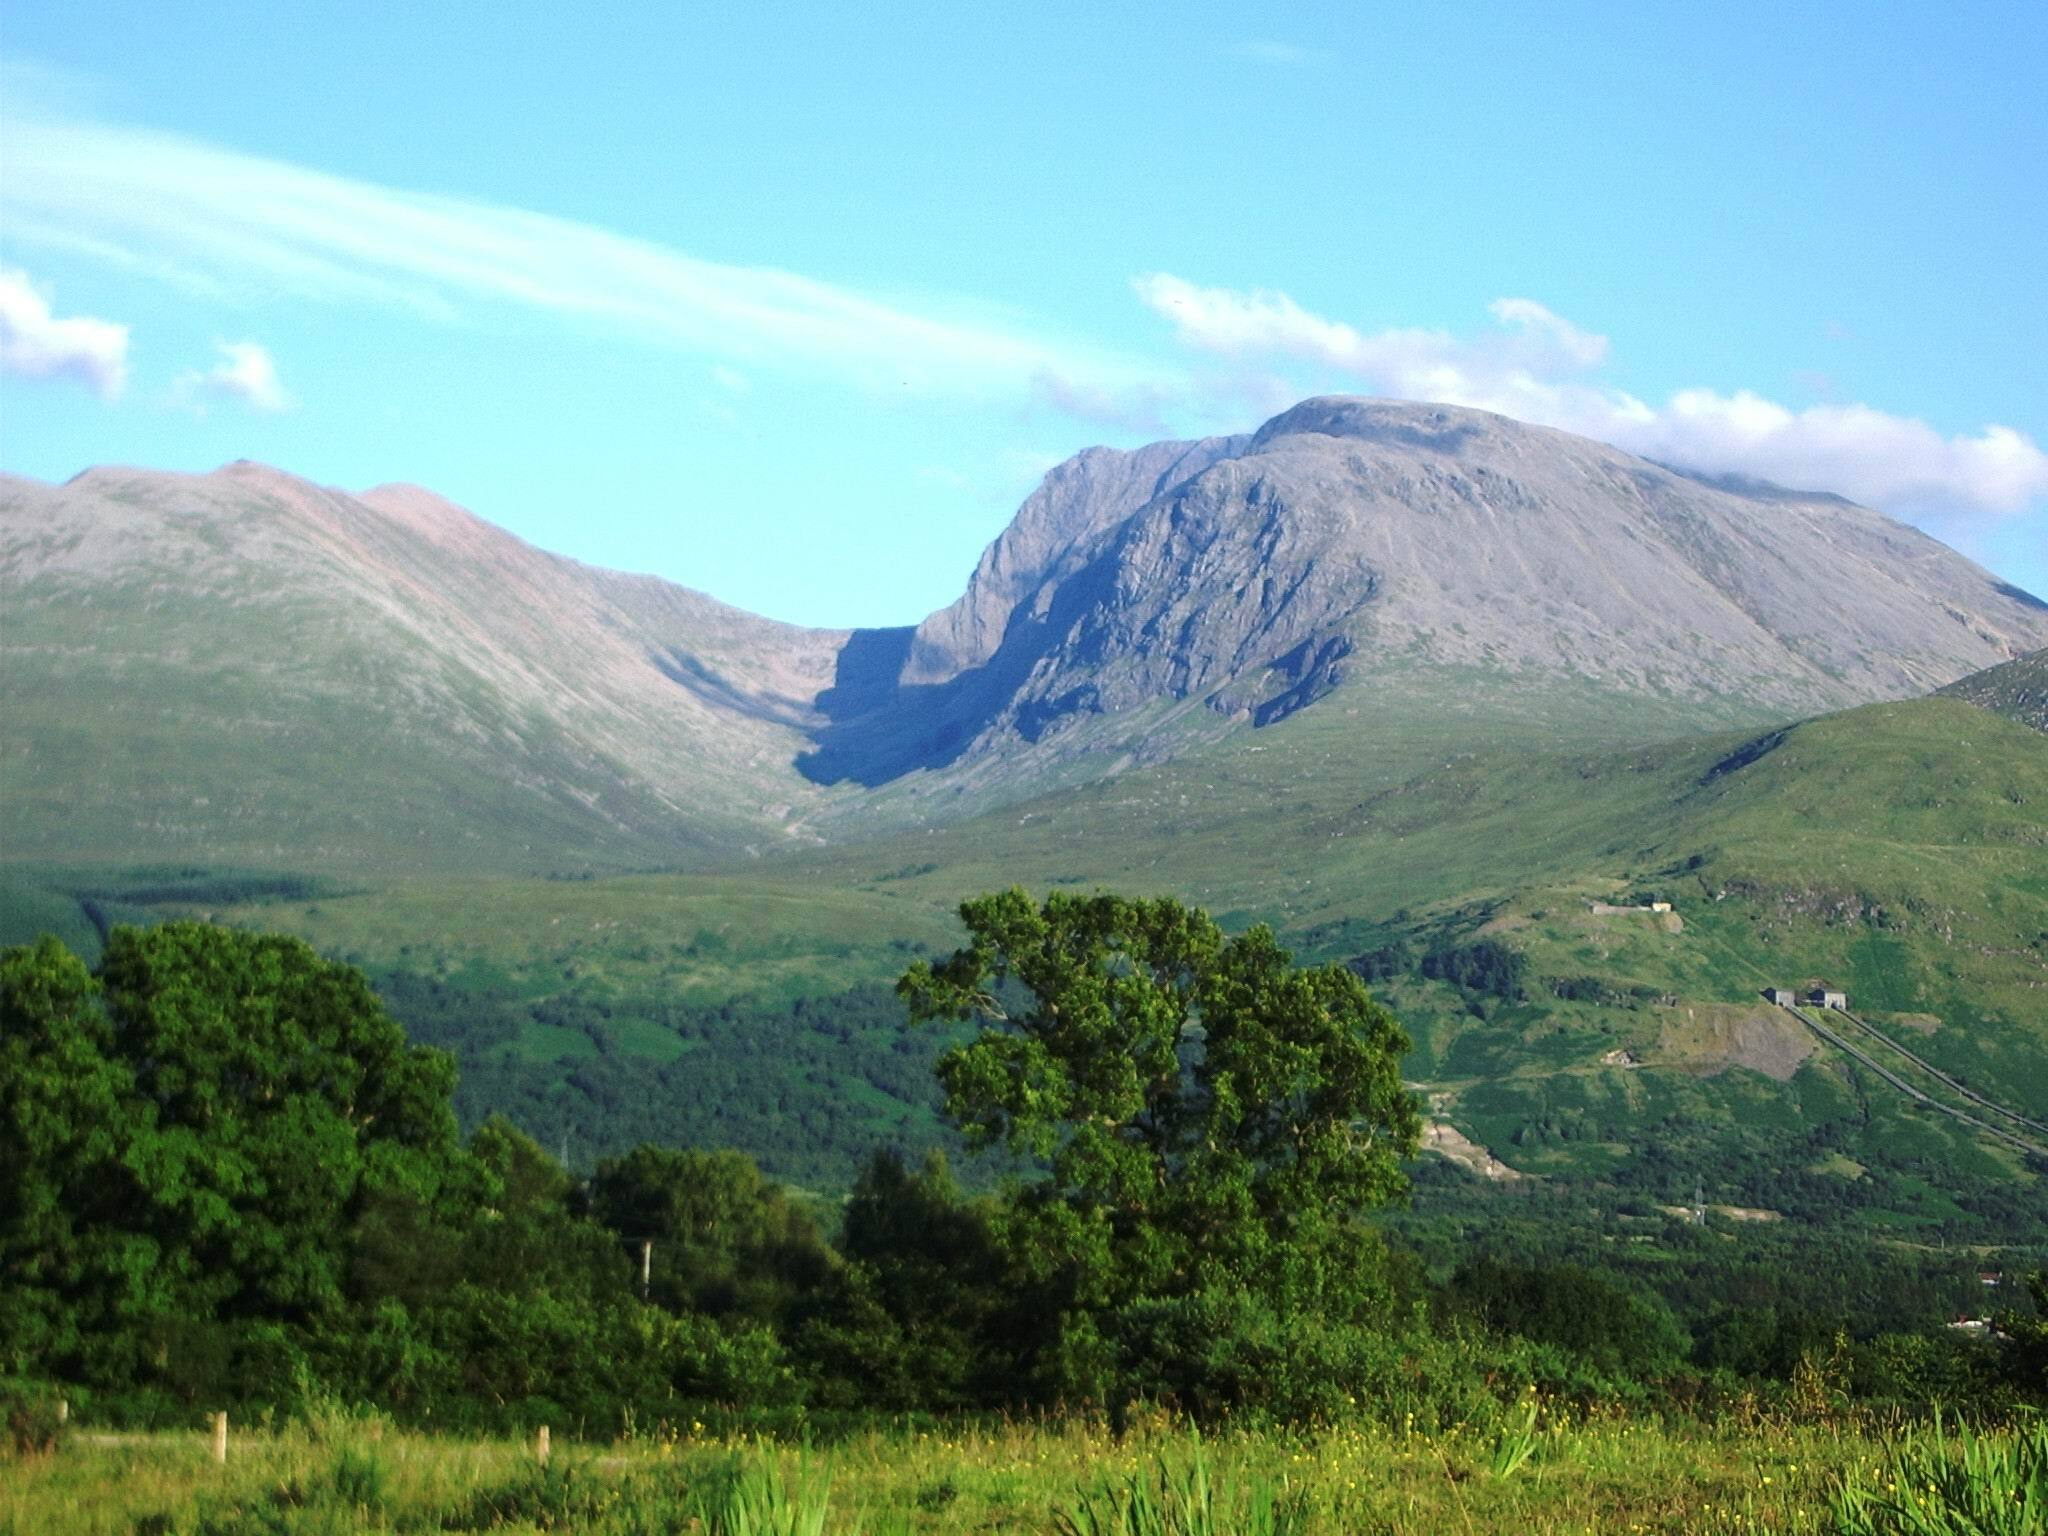 At just over 1,300 meters, Ben Nevis is the United Kingdom's tallest peak.